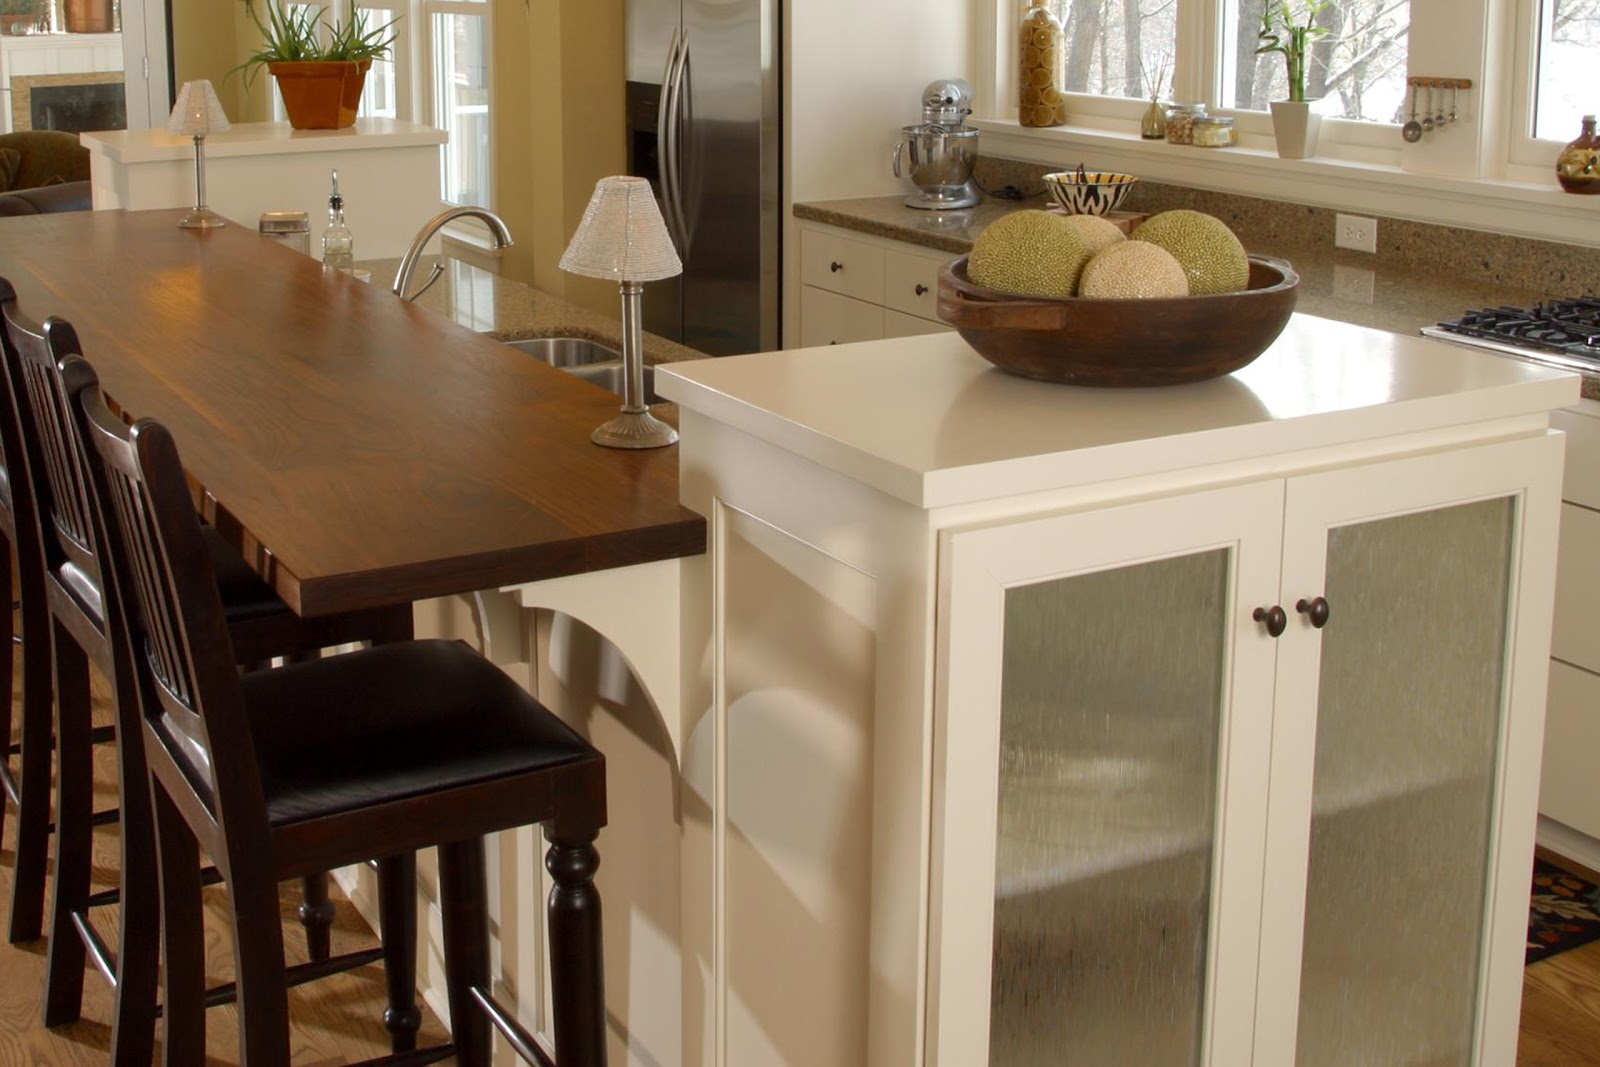 2 tier kitchen island tall table with bench simply elegant home designs blog: design ideas - 3 ...